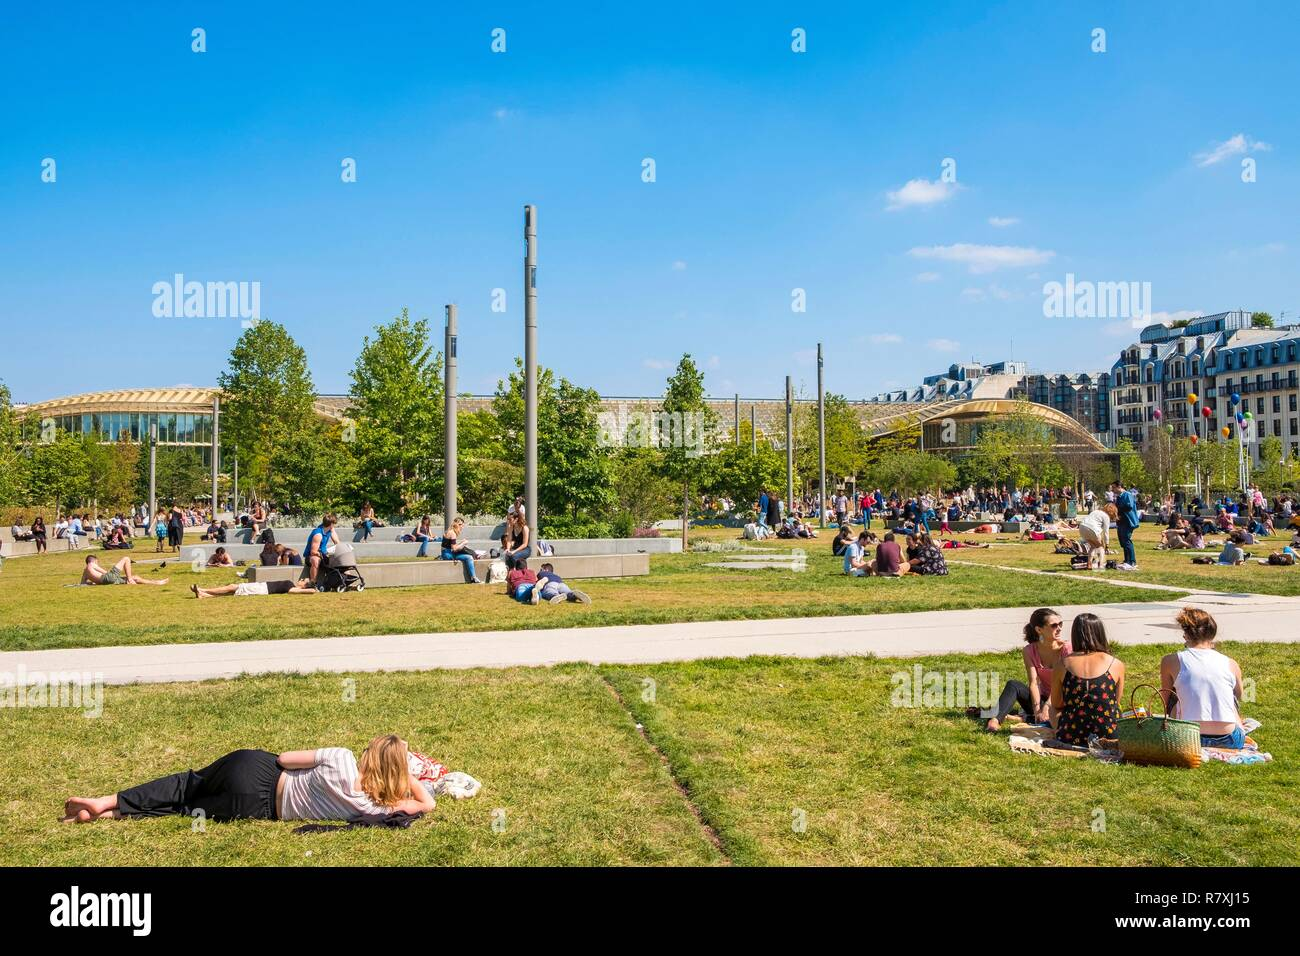 France, Paris, Chatelet-Les Halles, the Nelson Mandela garden and the Forum des Halles and its canopy in the background - Stock Image